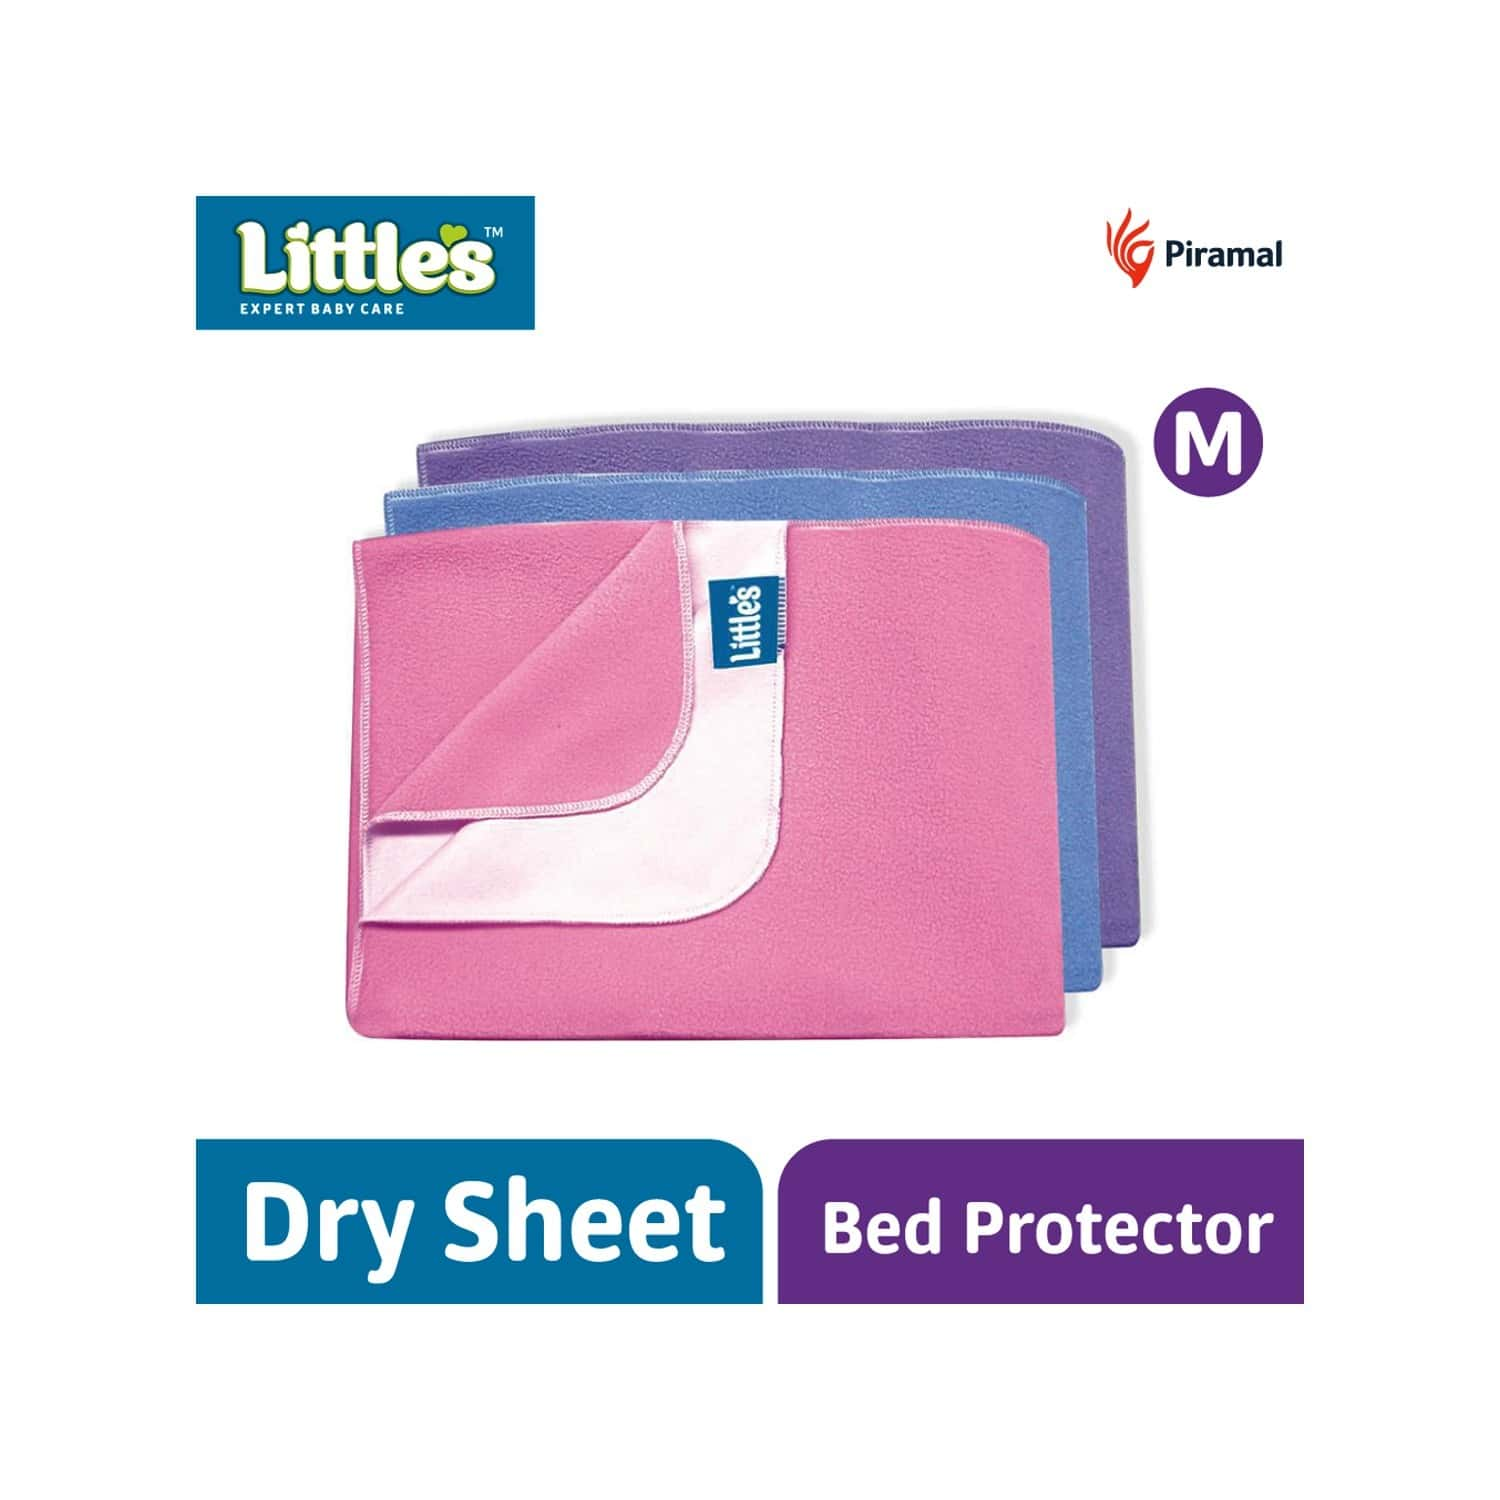 Little's Easy Dry Bed Protector - Medium